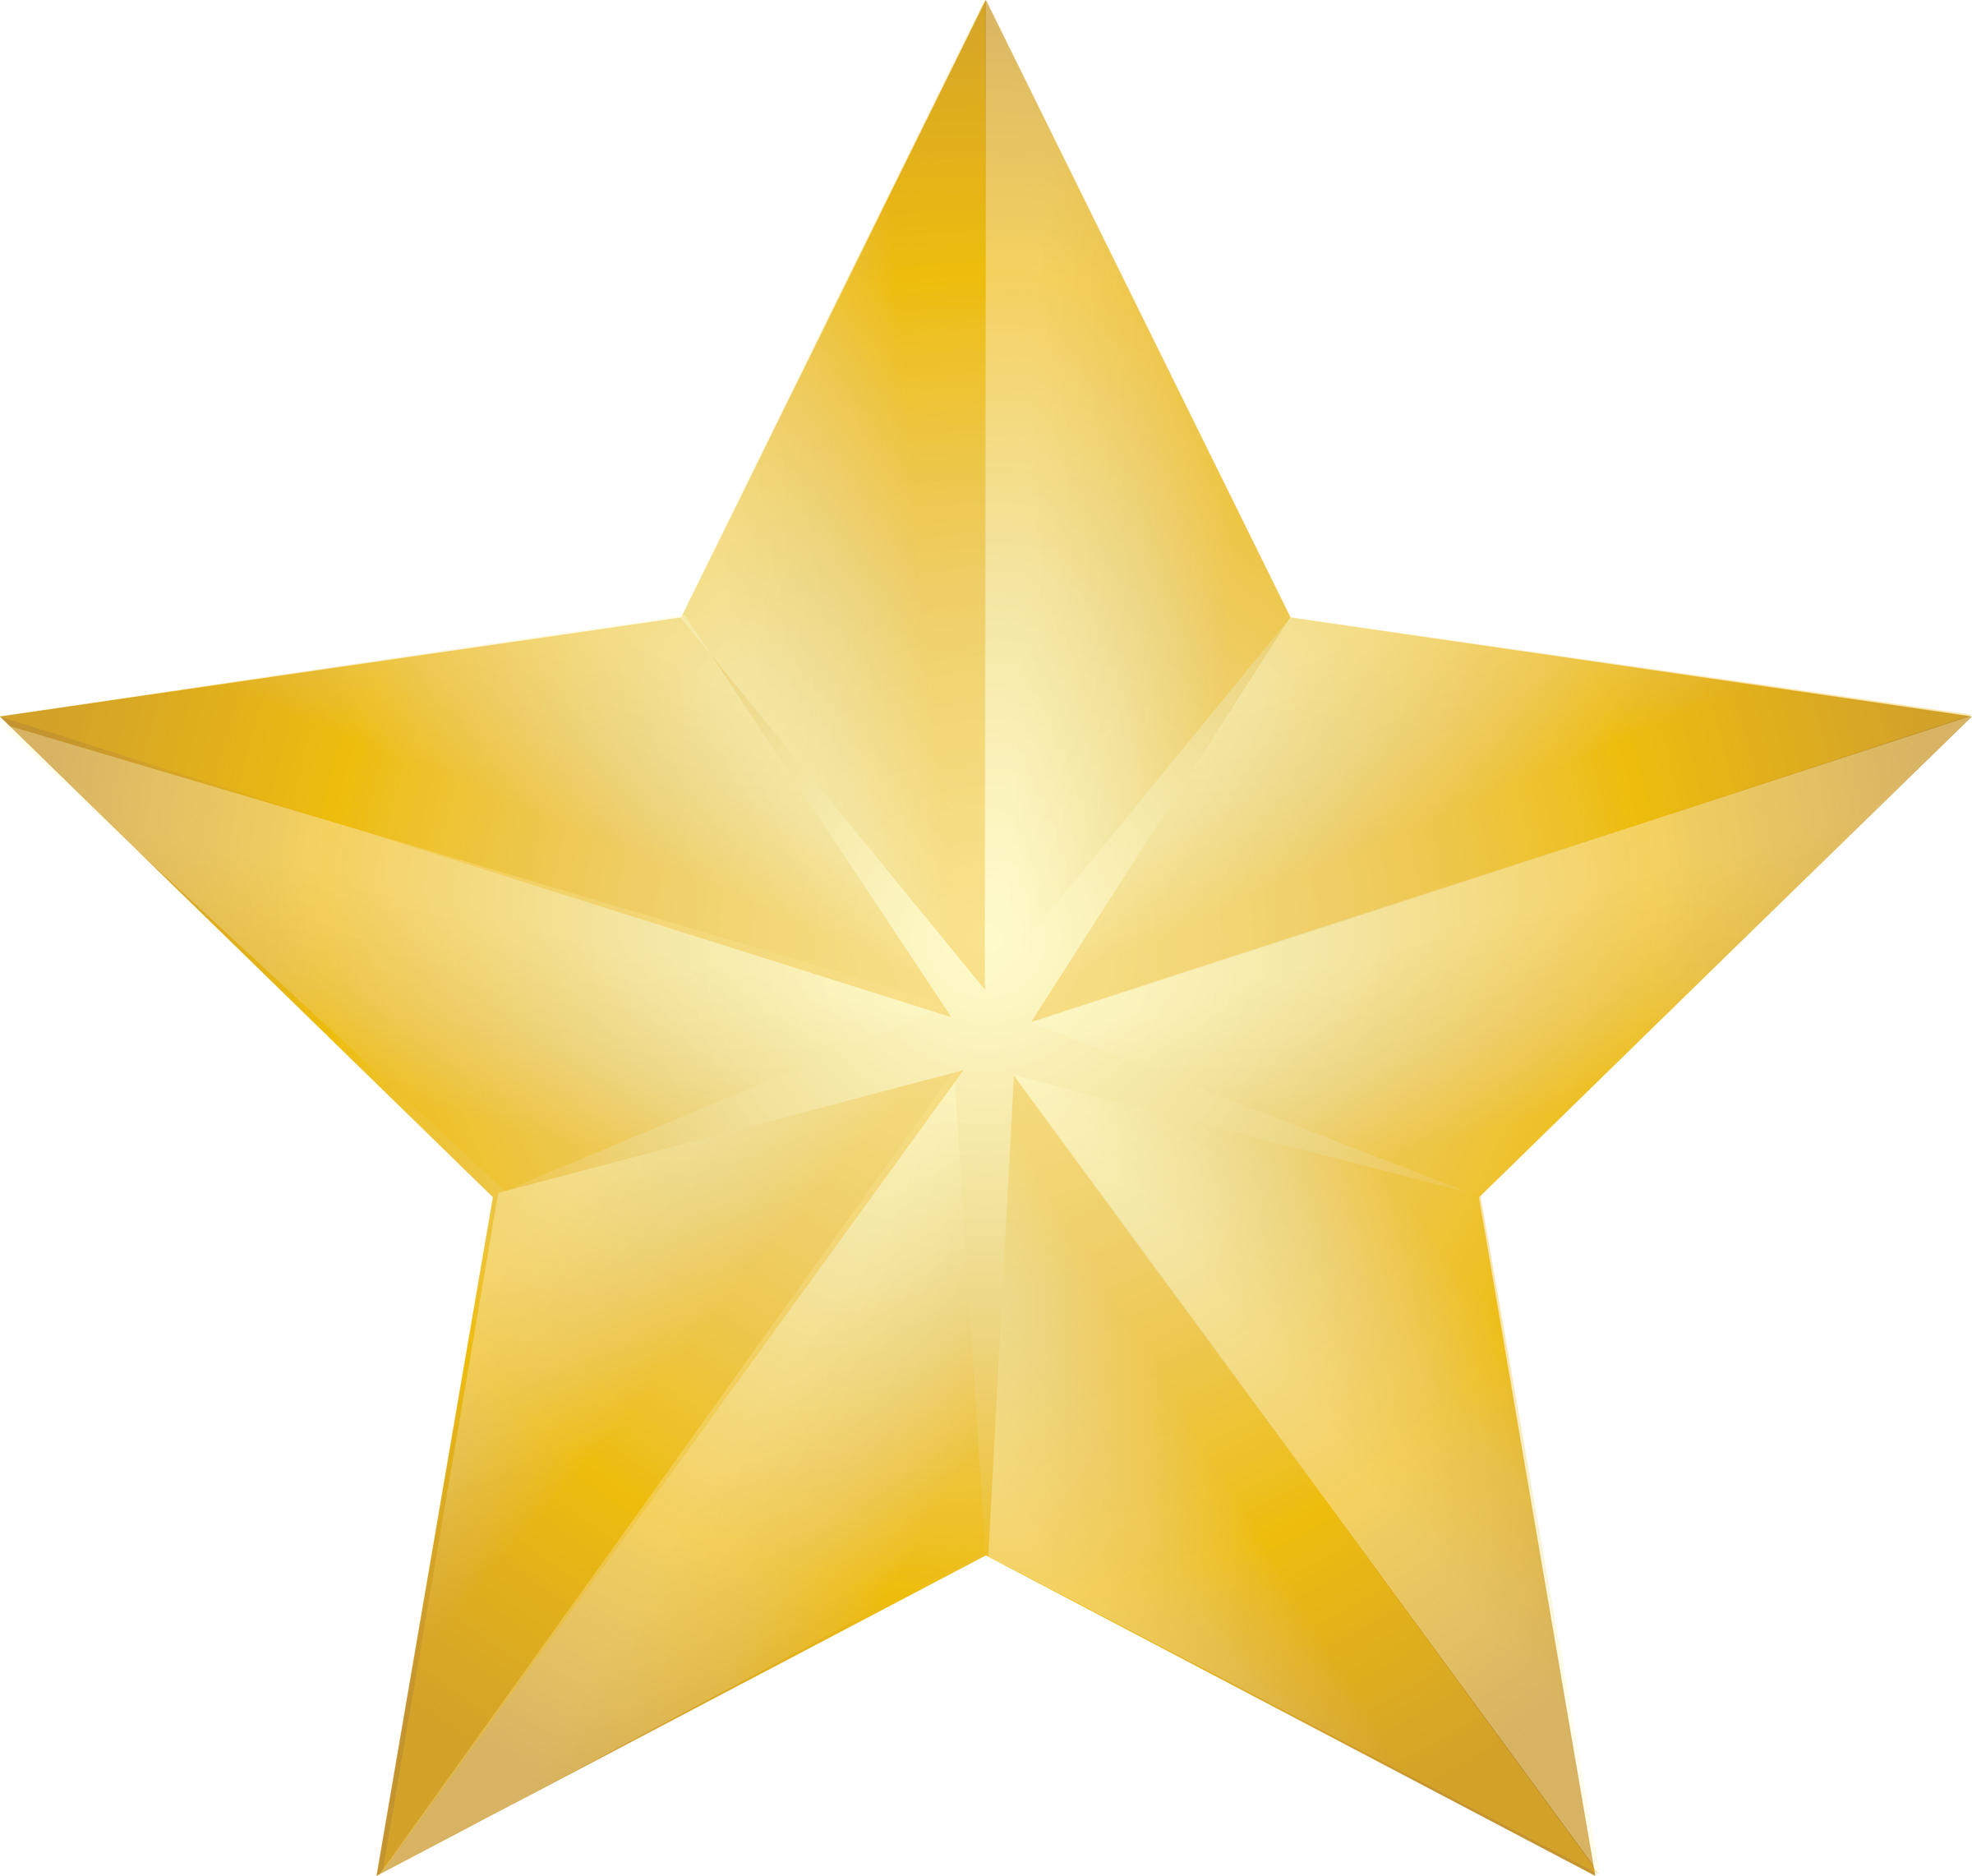 Free Picture Of A Gold Star, Download Free Clip Art, Free.